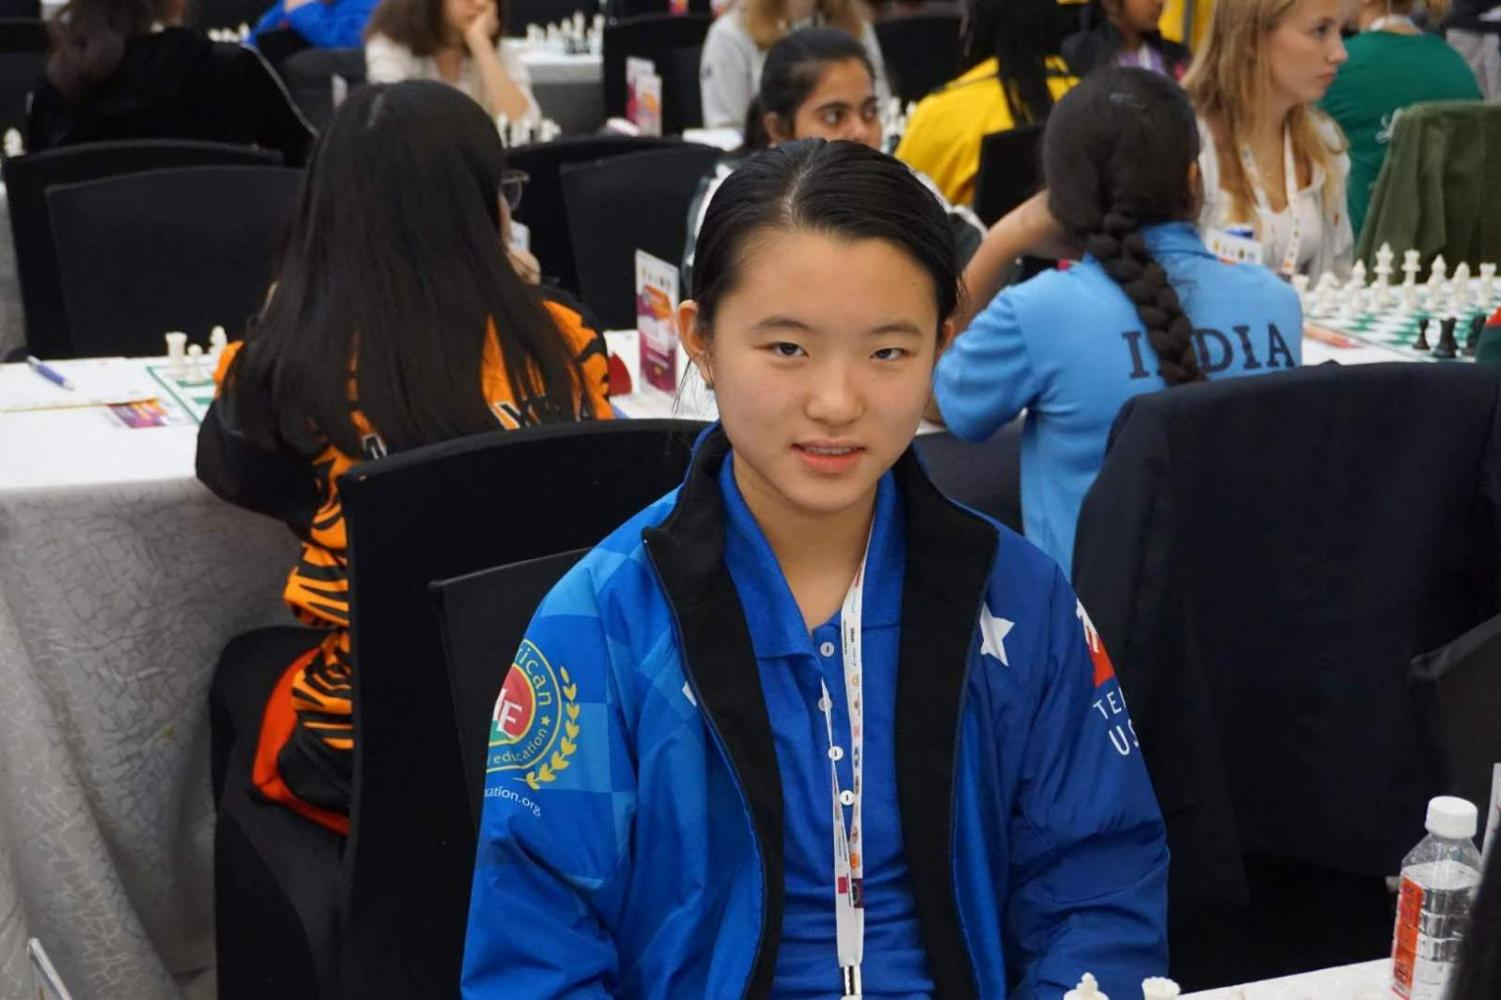 Freshman Amy Lei at the World Youth Chess Championship in Mumbai, India where is she currently competing.